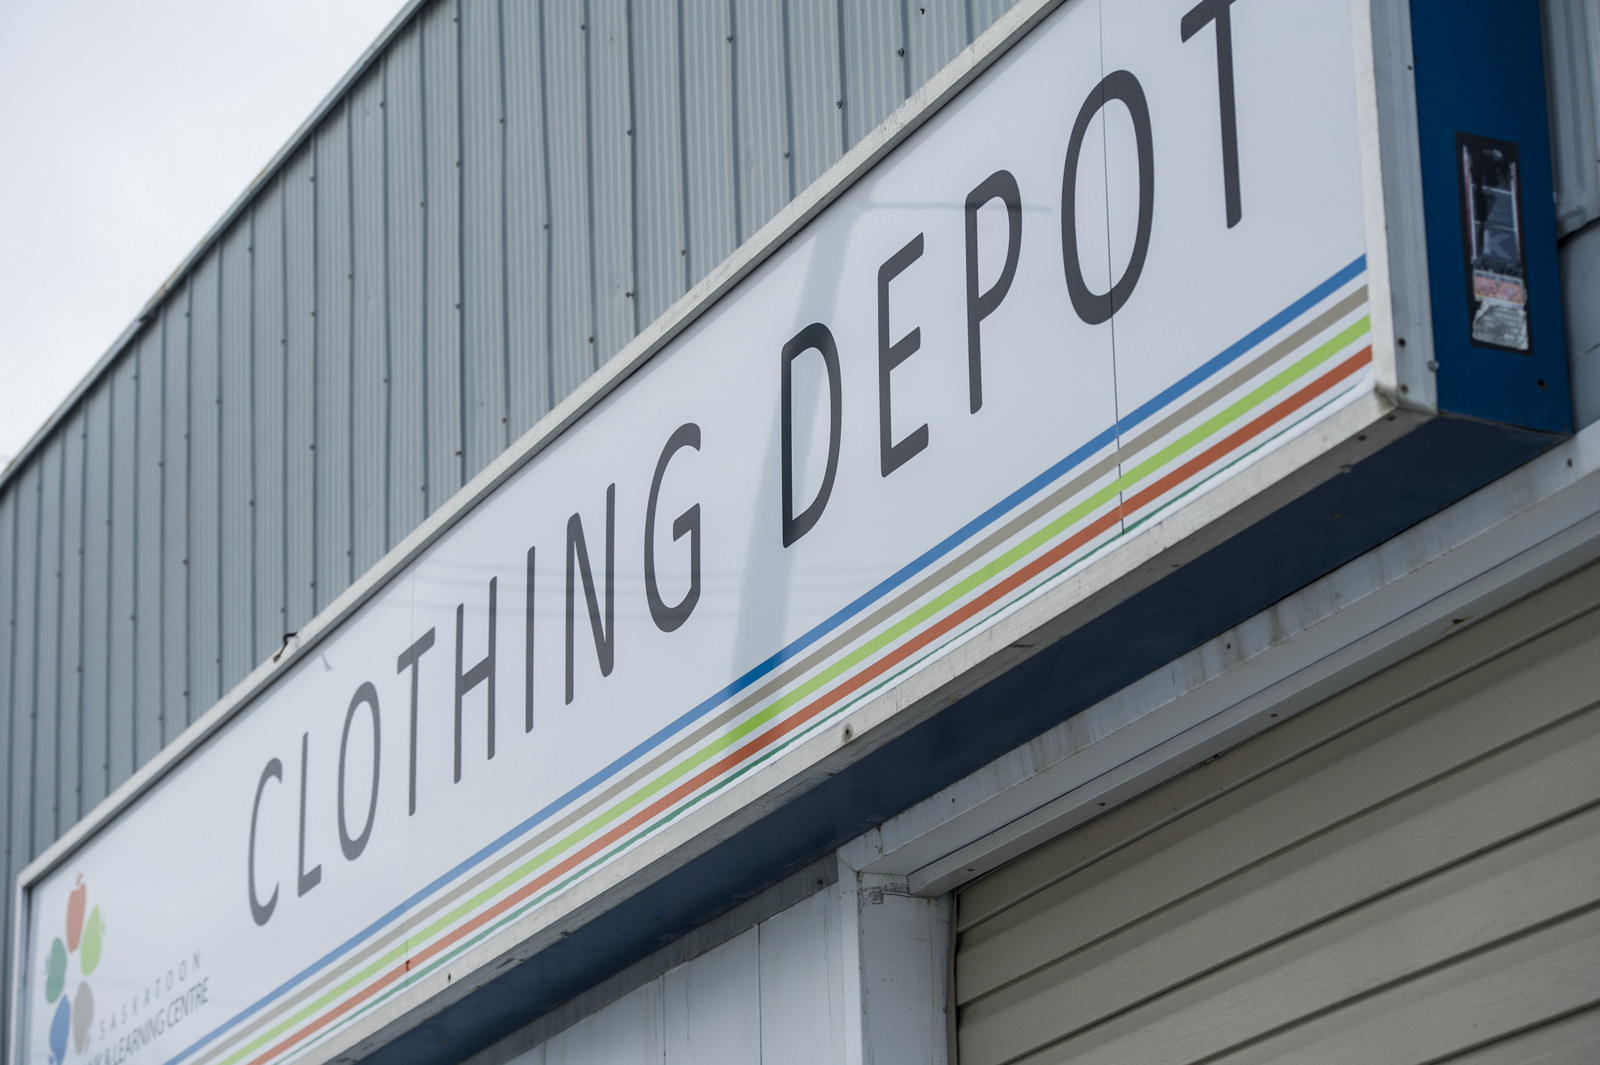 The Clothing Depot provides clothing, personal care items and other basic necessities for a nominal charge. Customers can shop at the Clothing Depot three times a week and purchase a large bag of clothes and three sundry items for $2.00. The Clothing Depot is at 223 Ave B South and will accept donations of clothing, personal care and household items (no appliances or electrical items please).